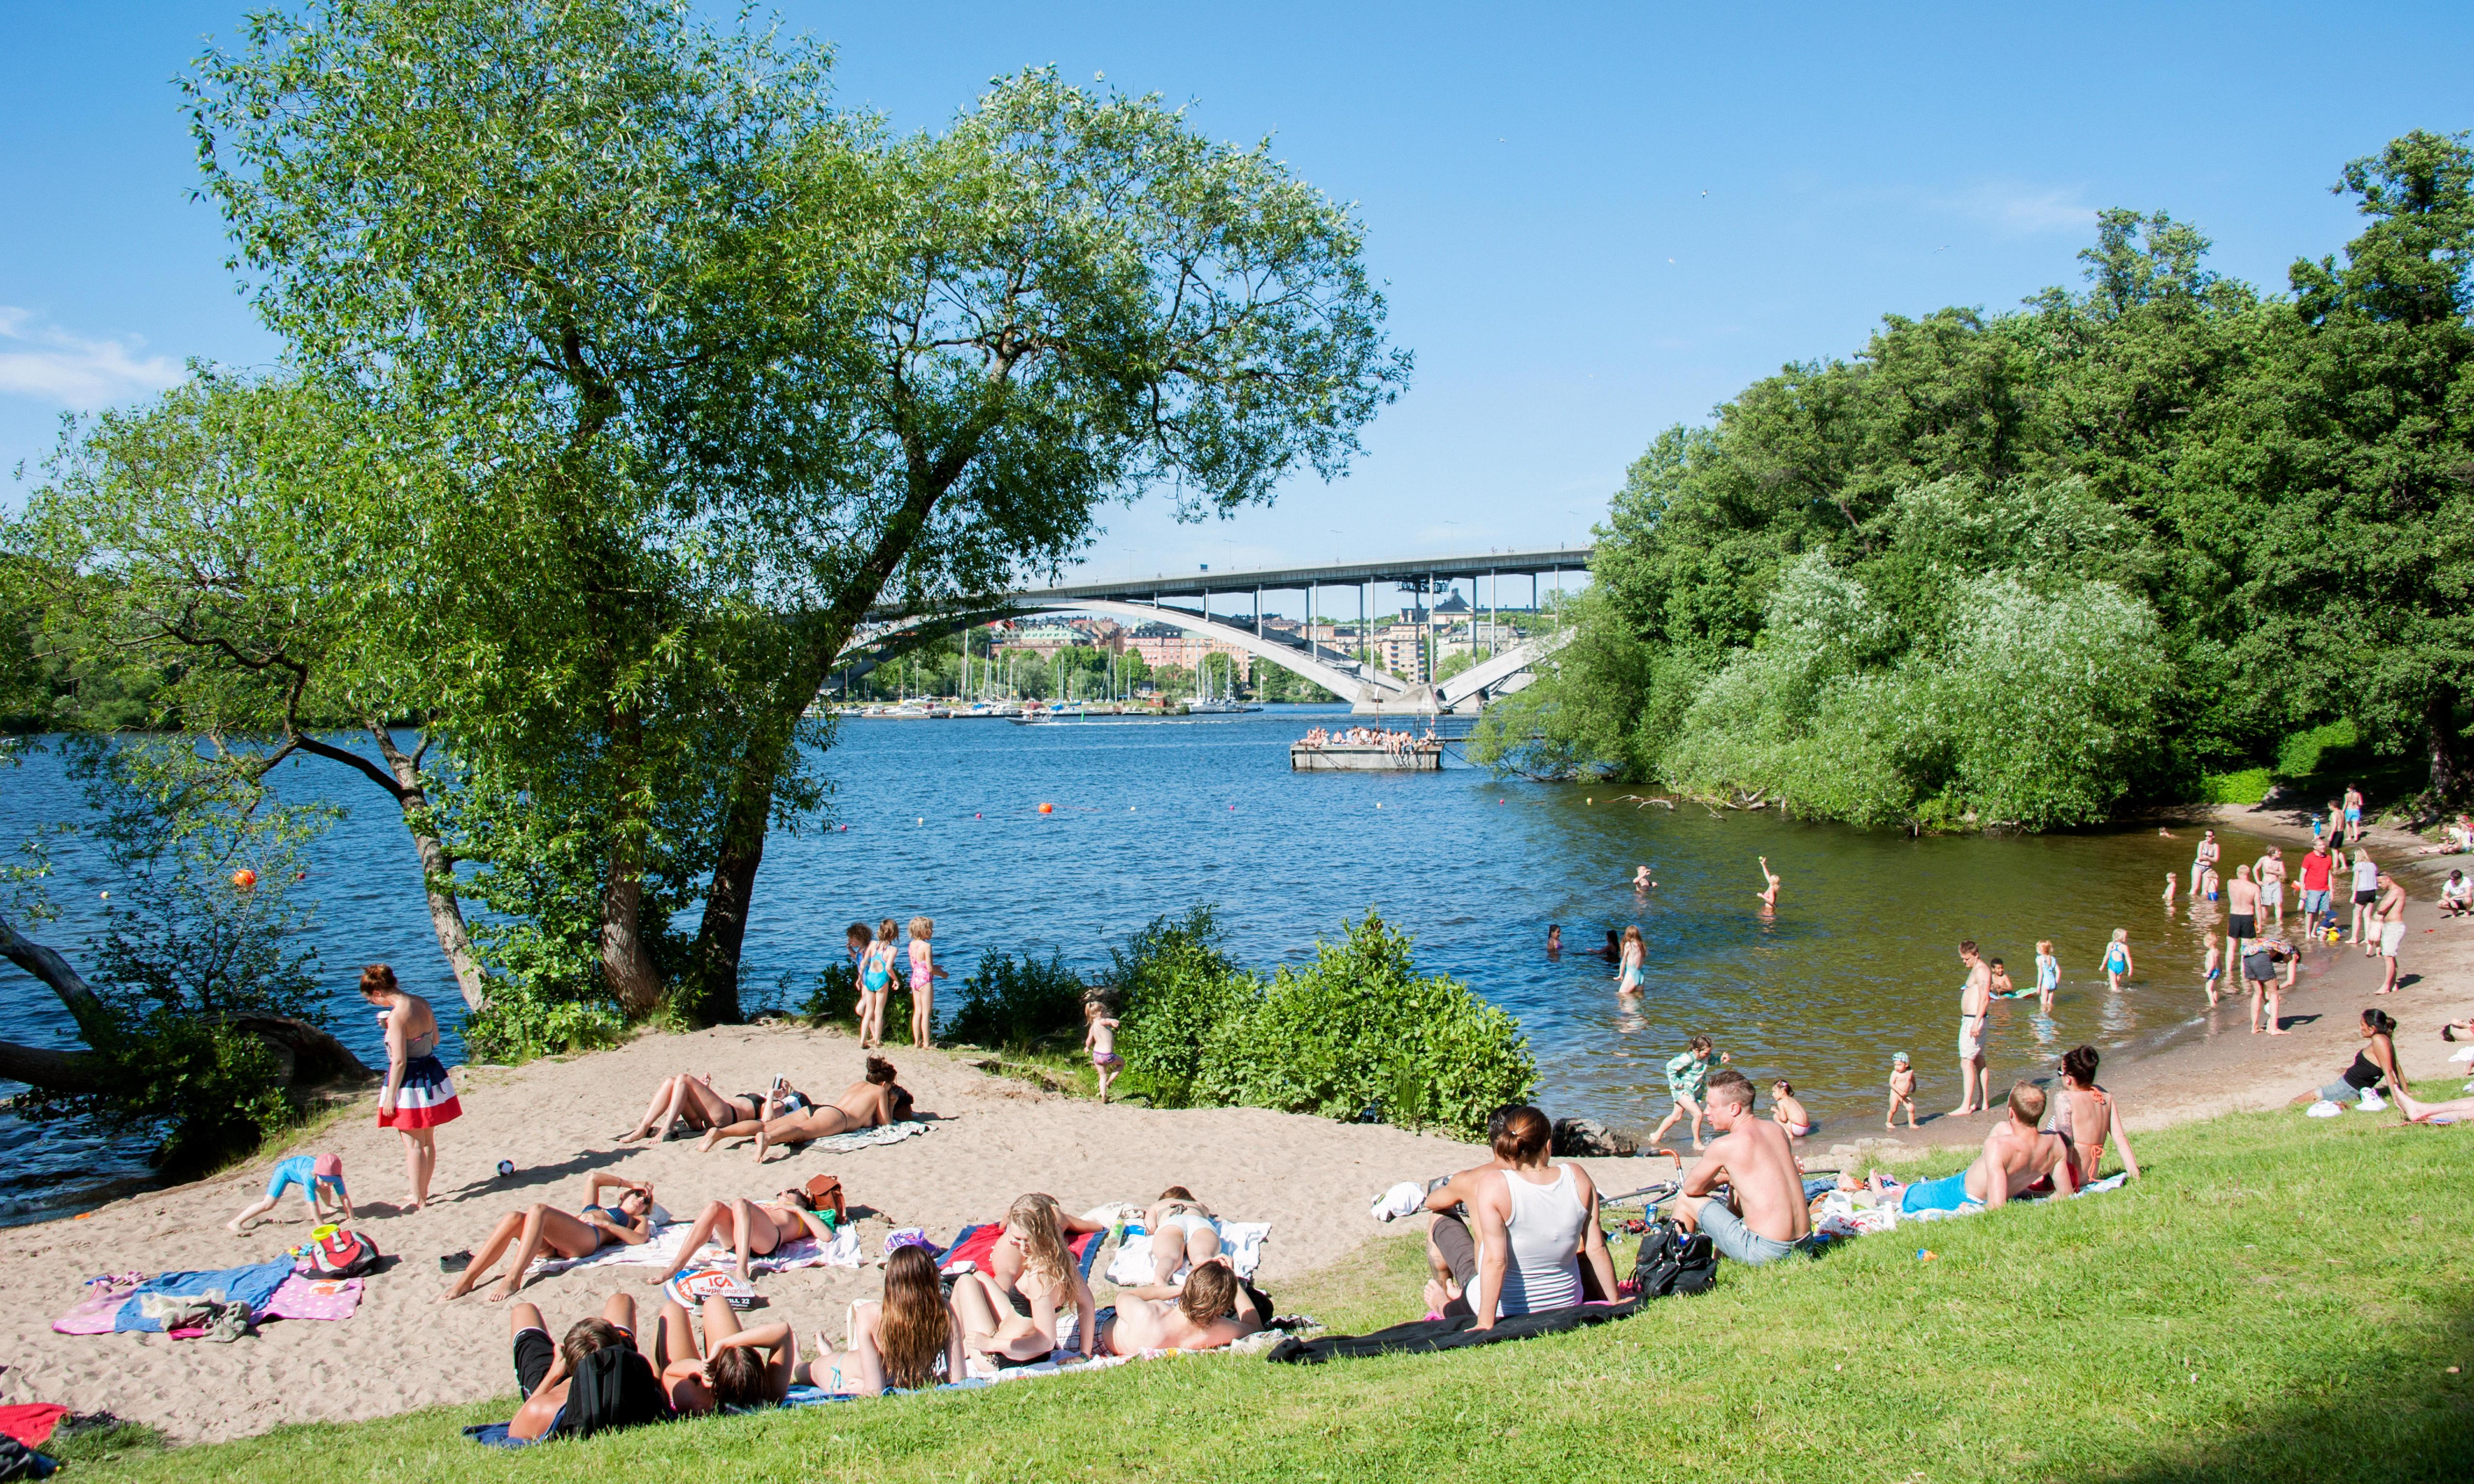 A local's guide to Stockholm: 10 top tips